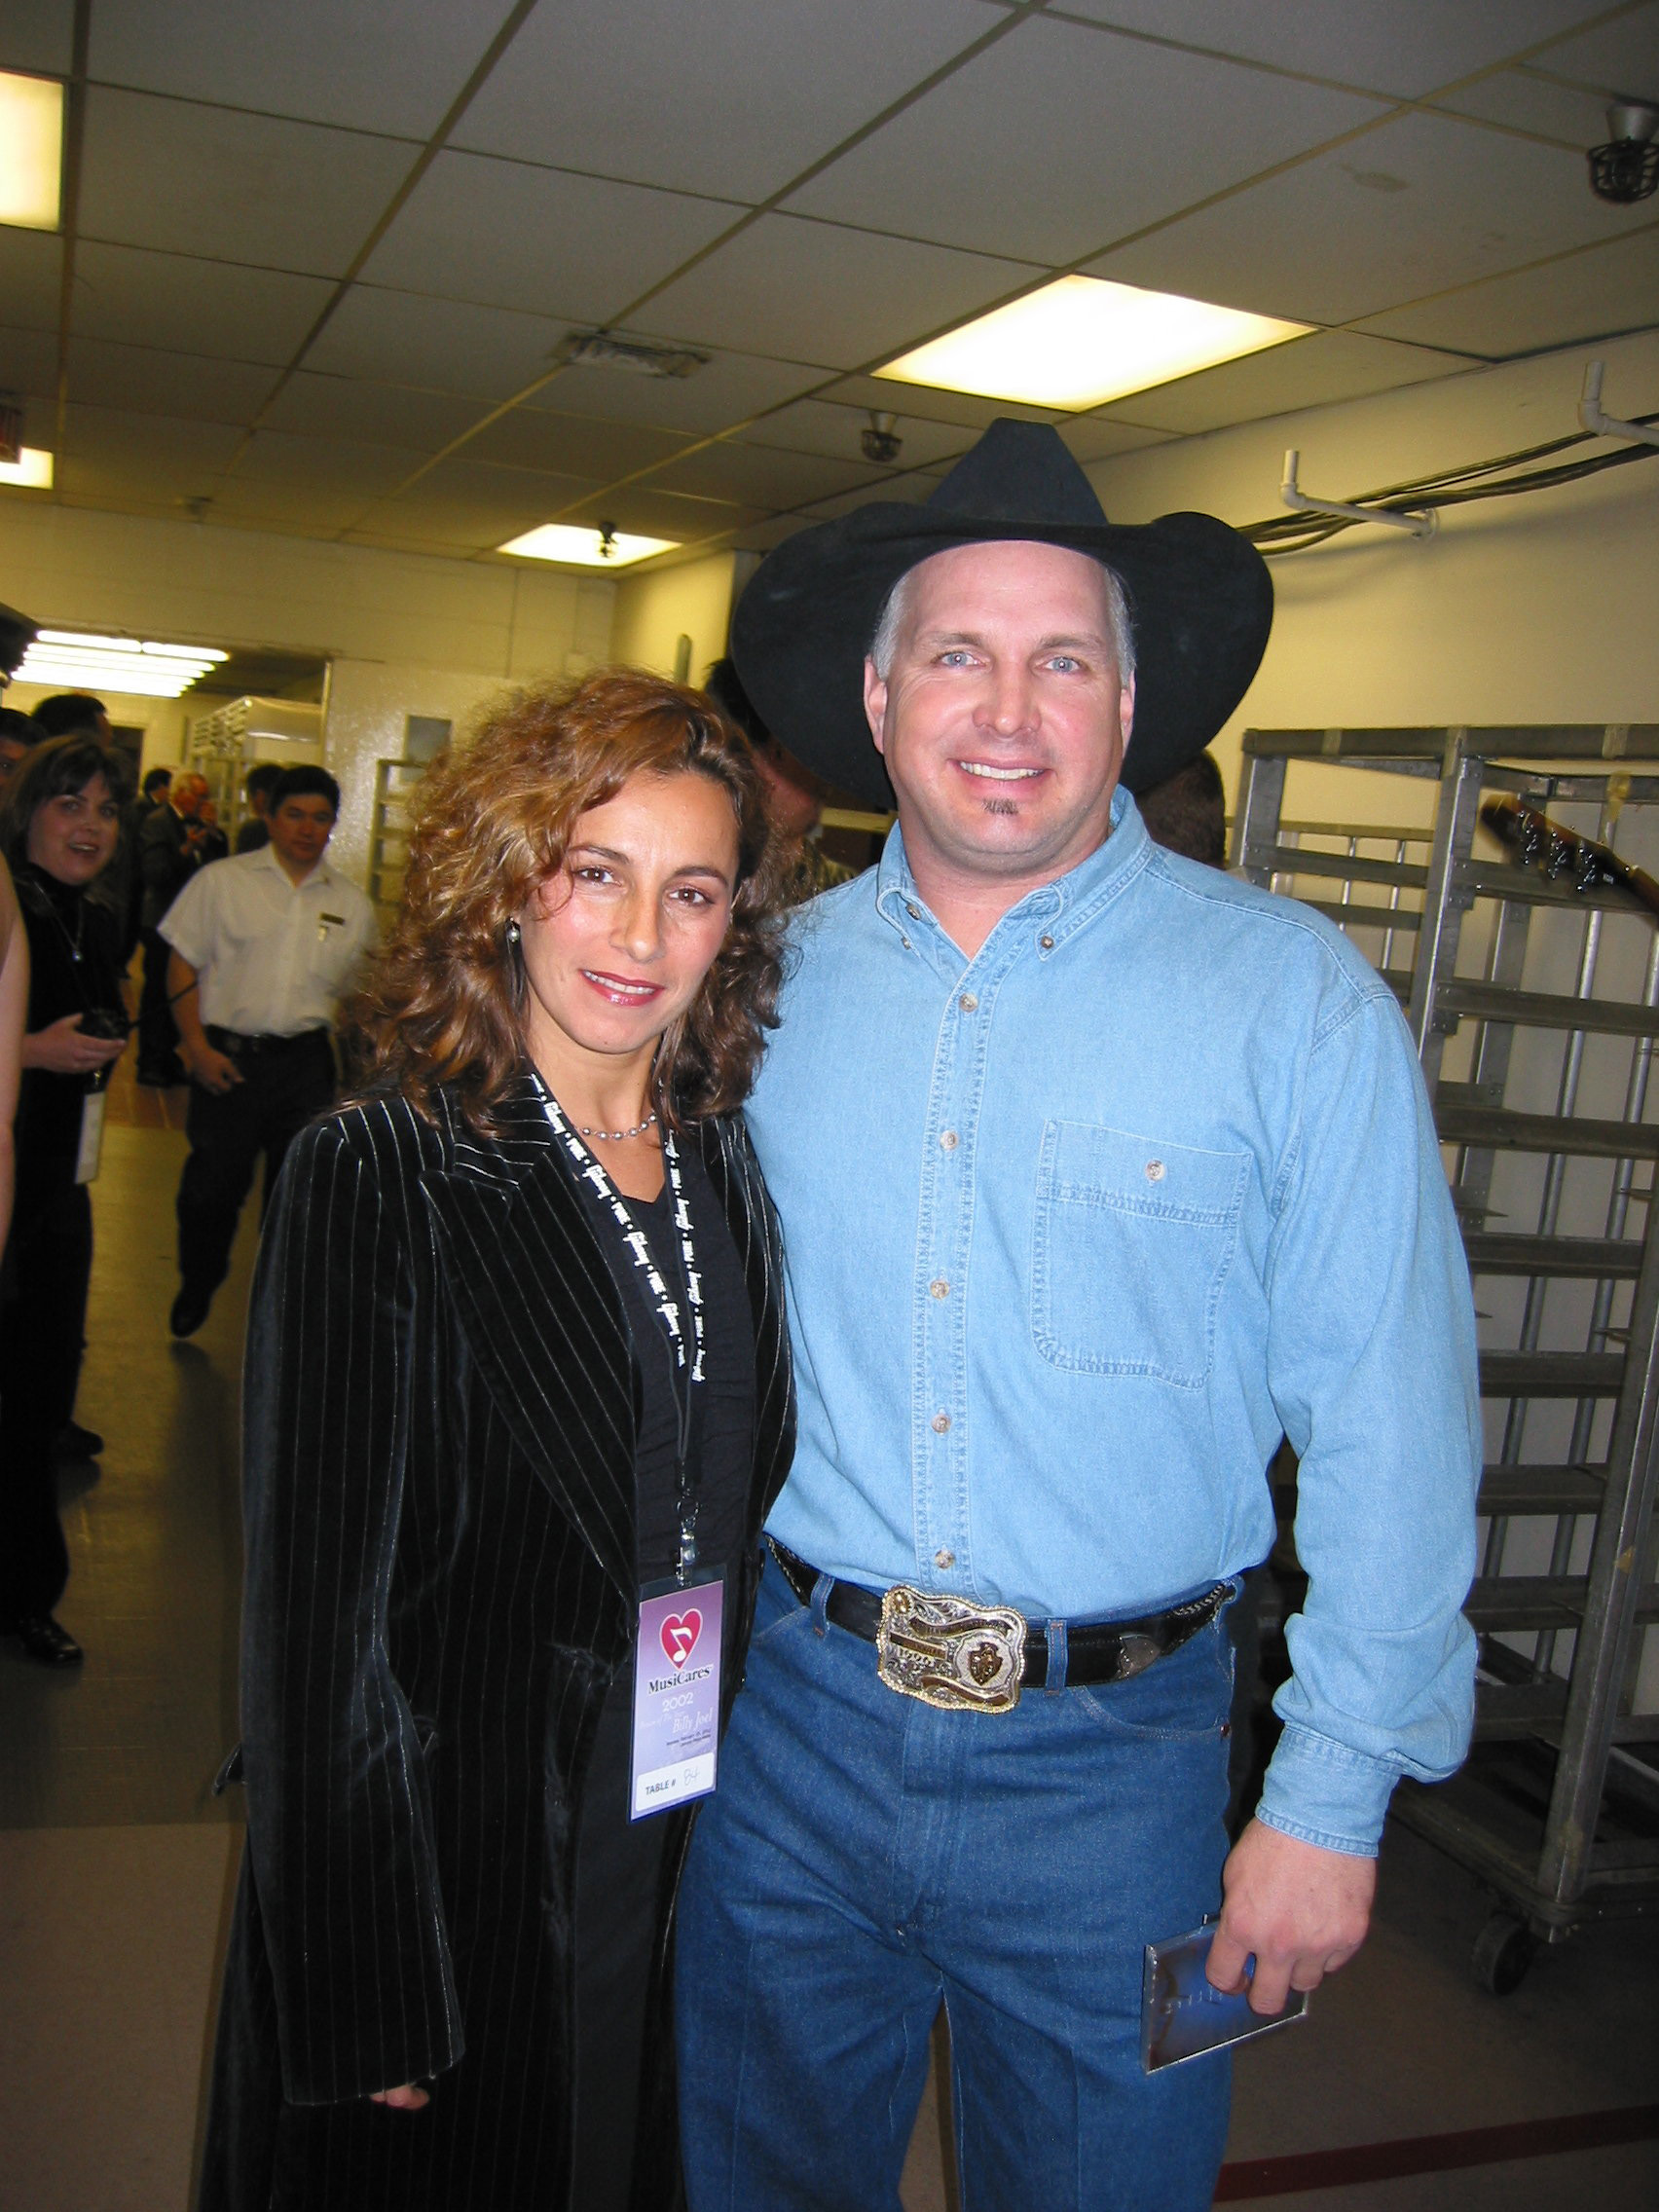 Garth Brooks Selma Fonseca.jpg